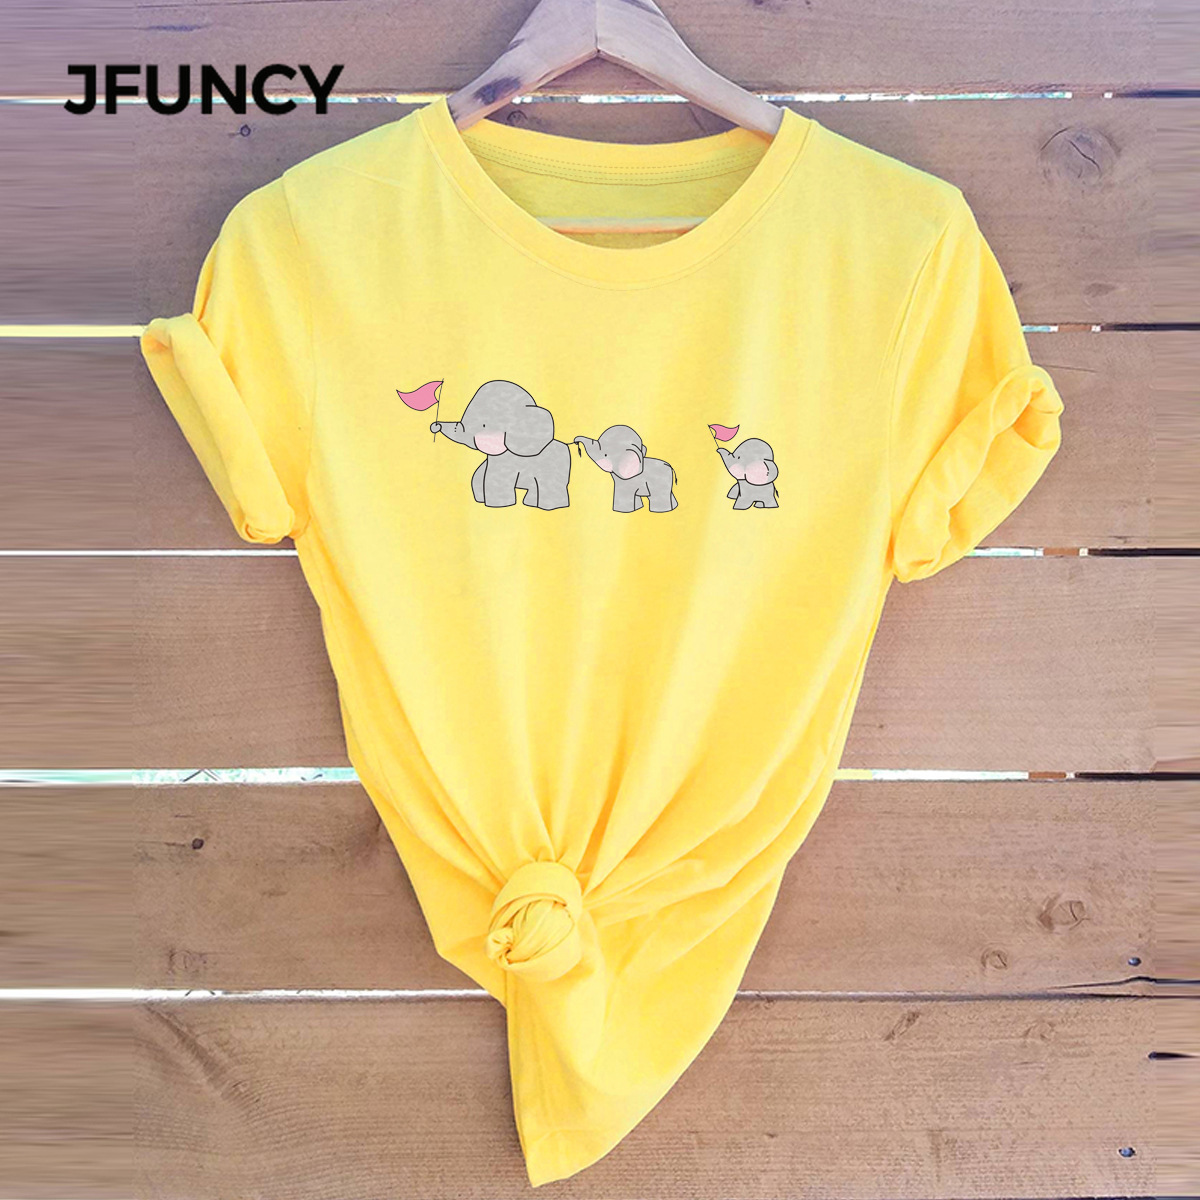 JFUNCY 2020 Spring Summer Women Tops Cute Elephant Family Cartoon T Shirt Short Sleeve Woman Casual Tee Shirts Cotton T-shirt